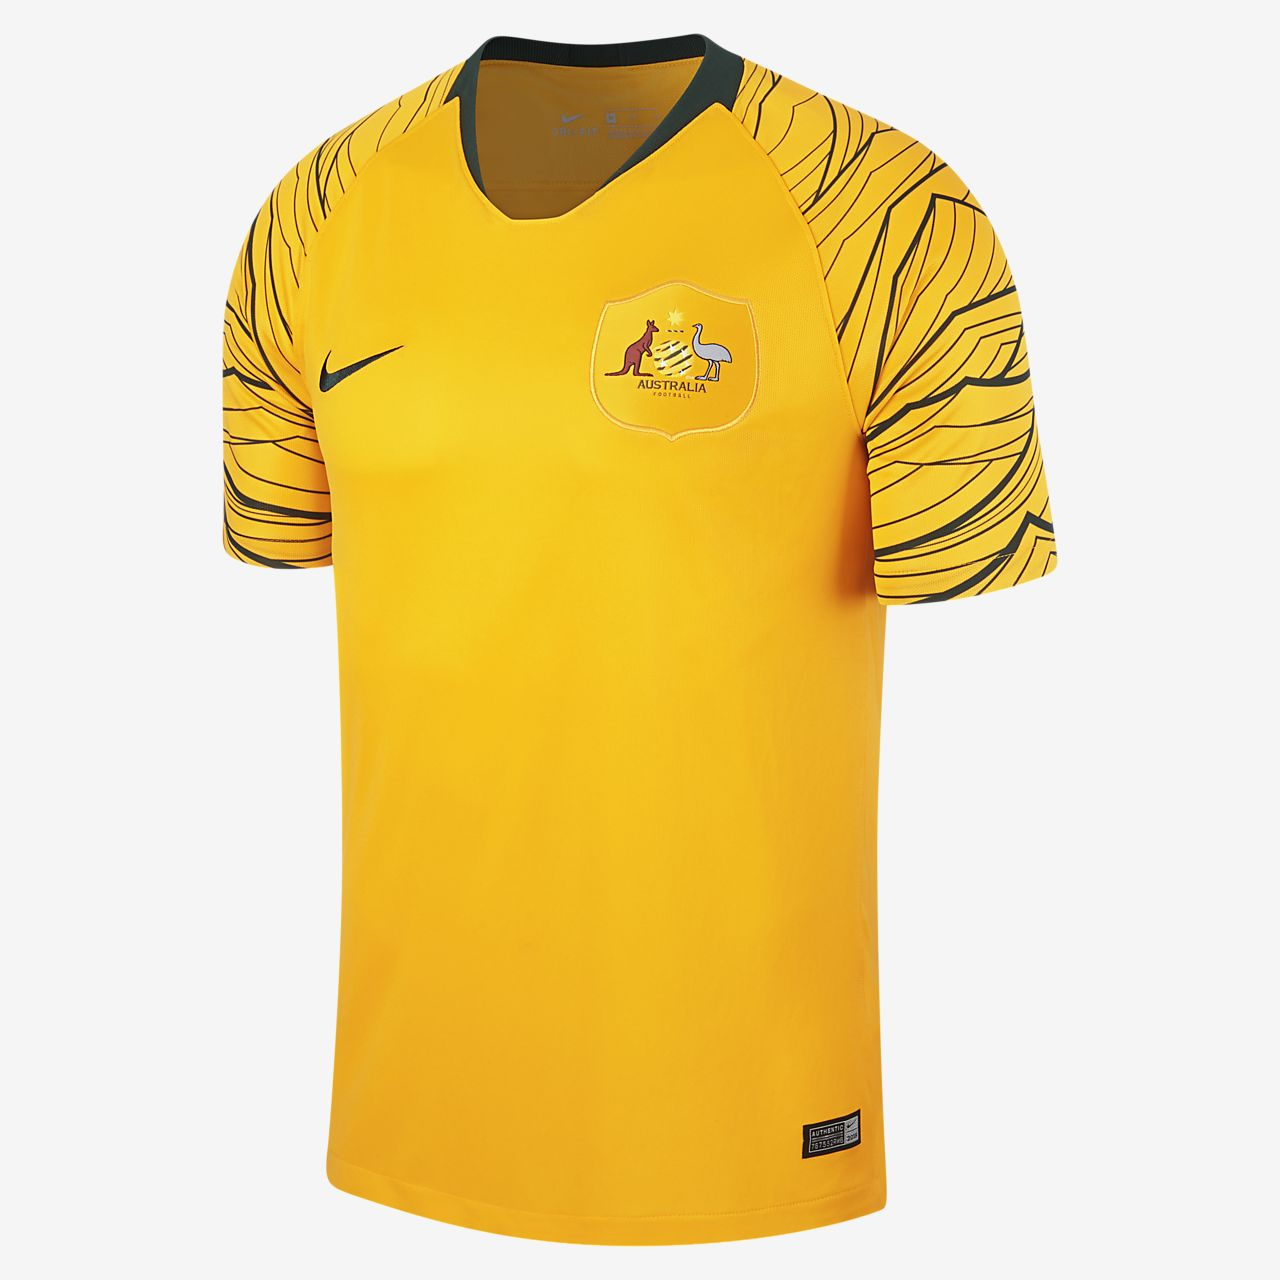 5fab7c1706d 2018 Australia Stadium Home Men s Football Shirt. Nike.com AU